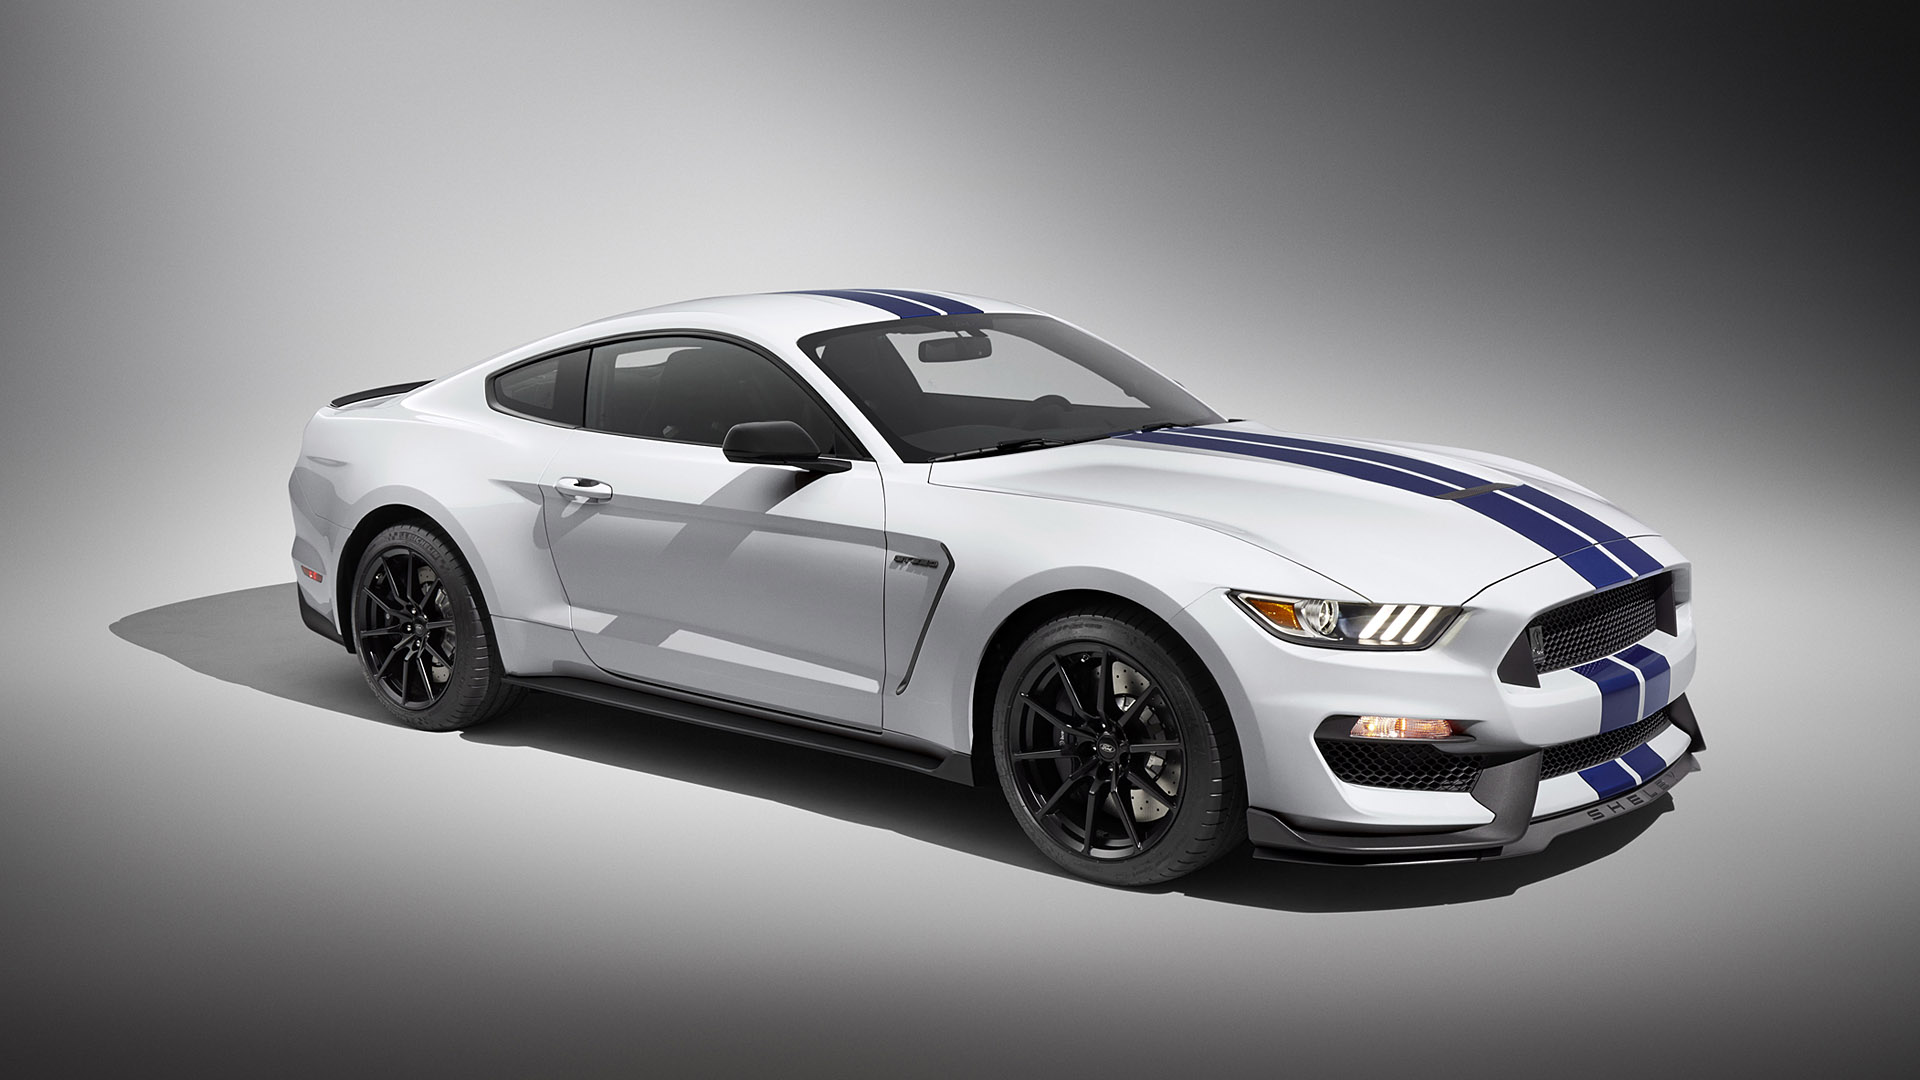 2016 Ford Shelby Mustang GT350 Wallpapers 1920x1080